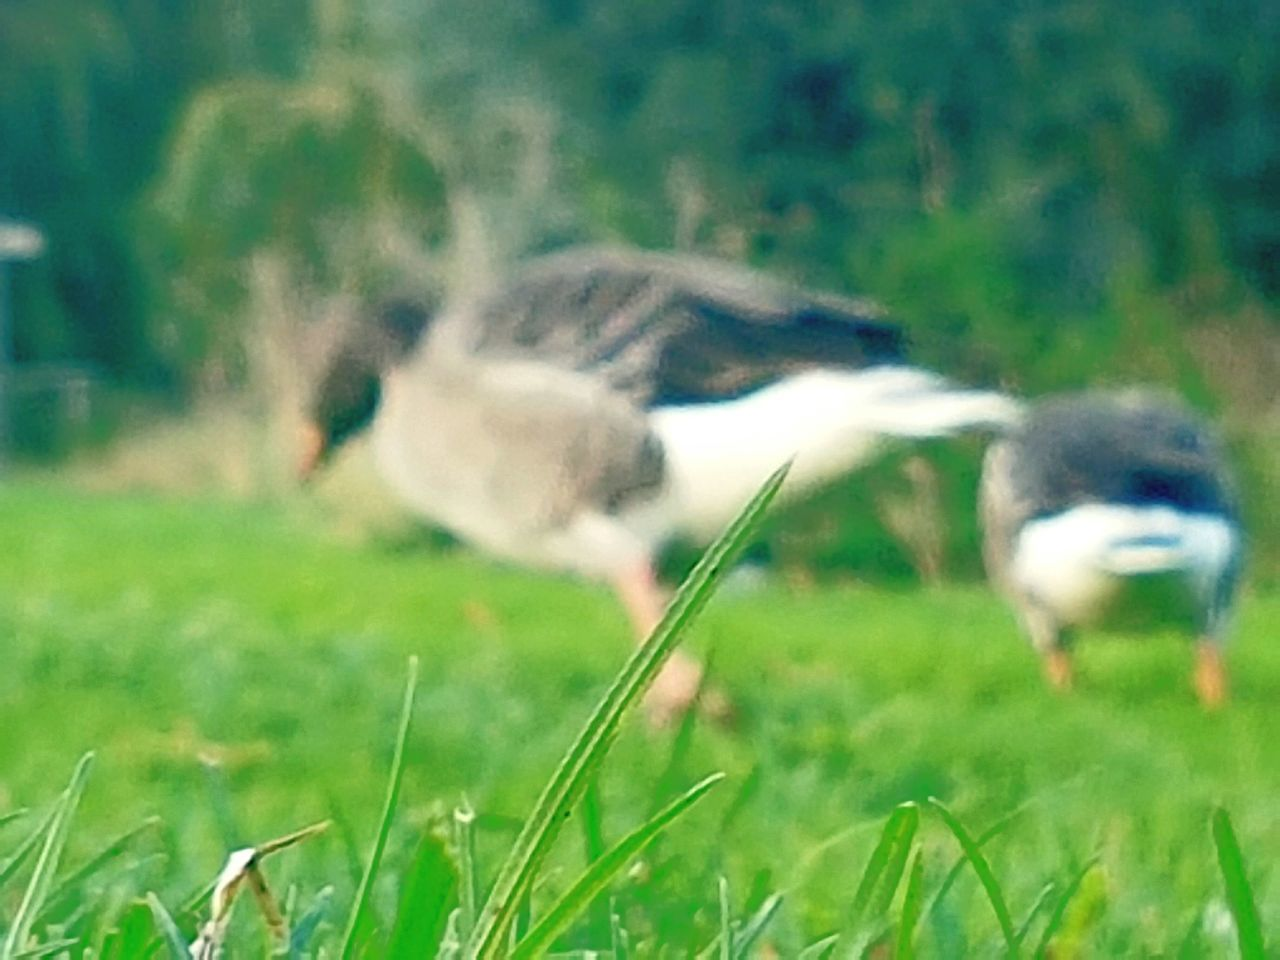 grass, field, animal themes, nature, day, growth, green color, one animal, outdoors, no people, domestic animals, grass area, beauty in nature, animals in the wild, mammal, landscape, bird, close-up